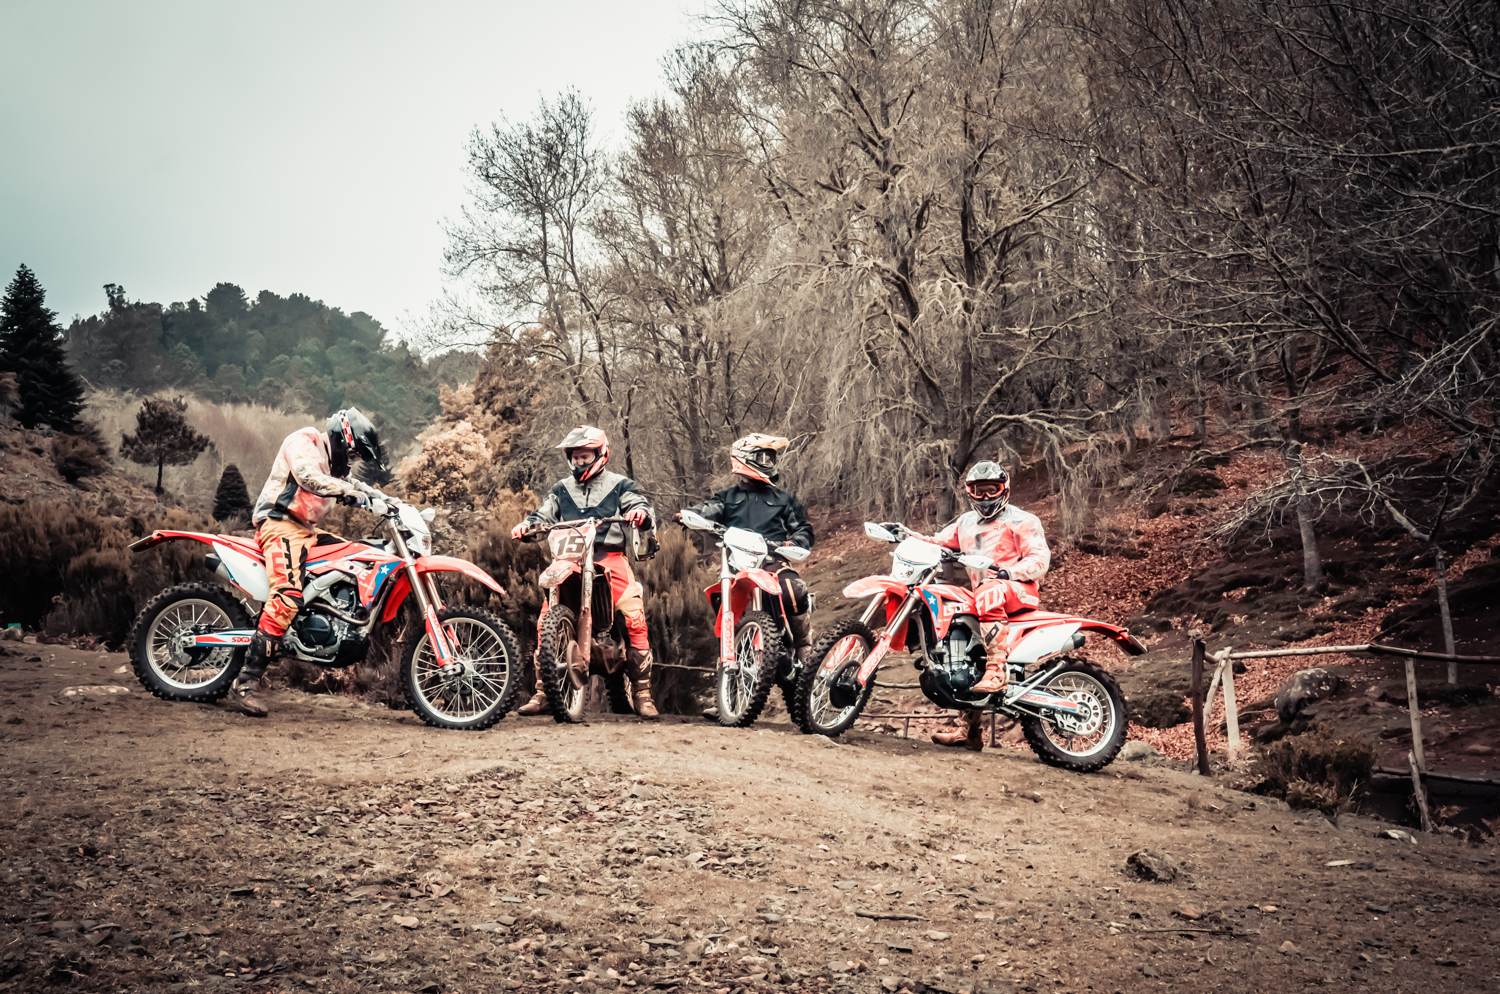 Four riders pose for a photo with their hondas CRF450RX off-road